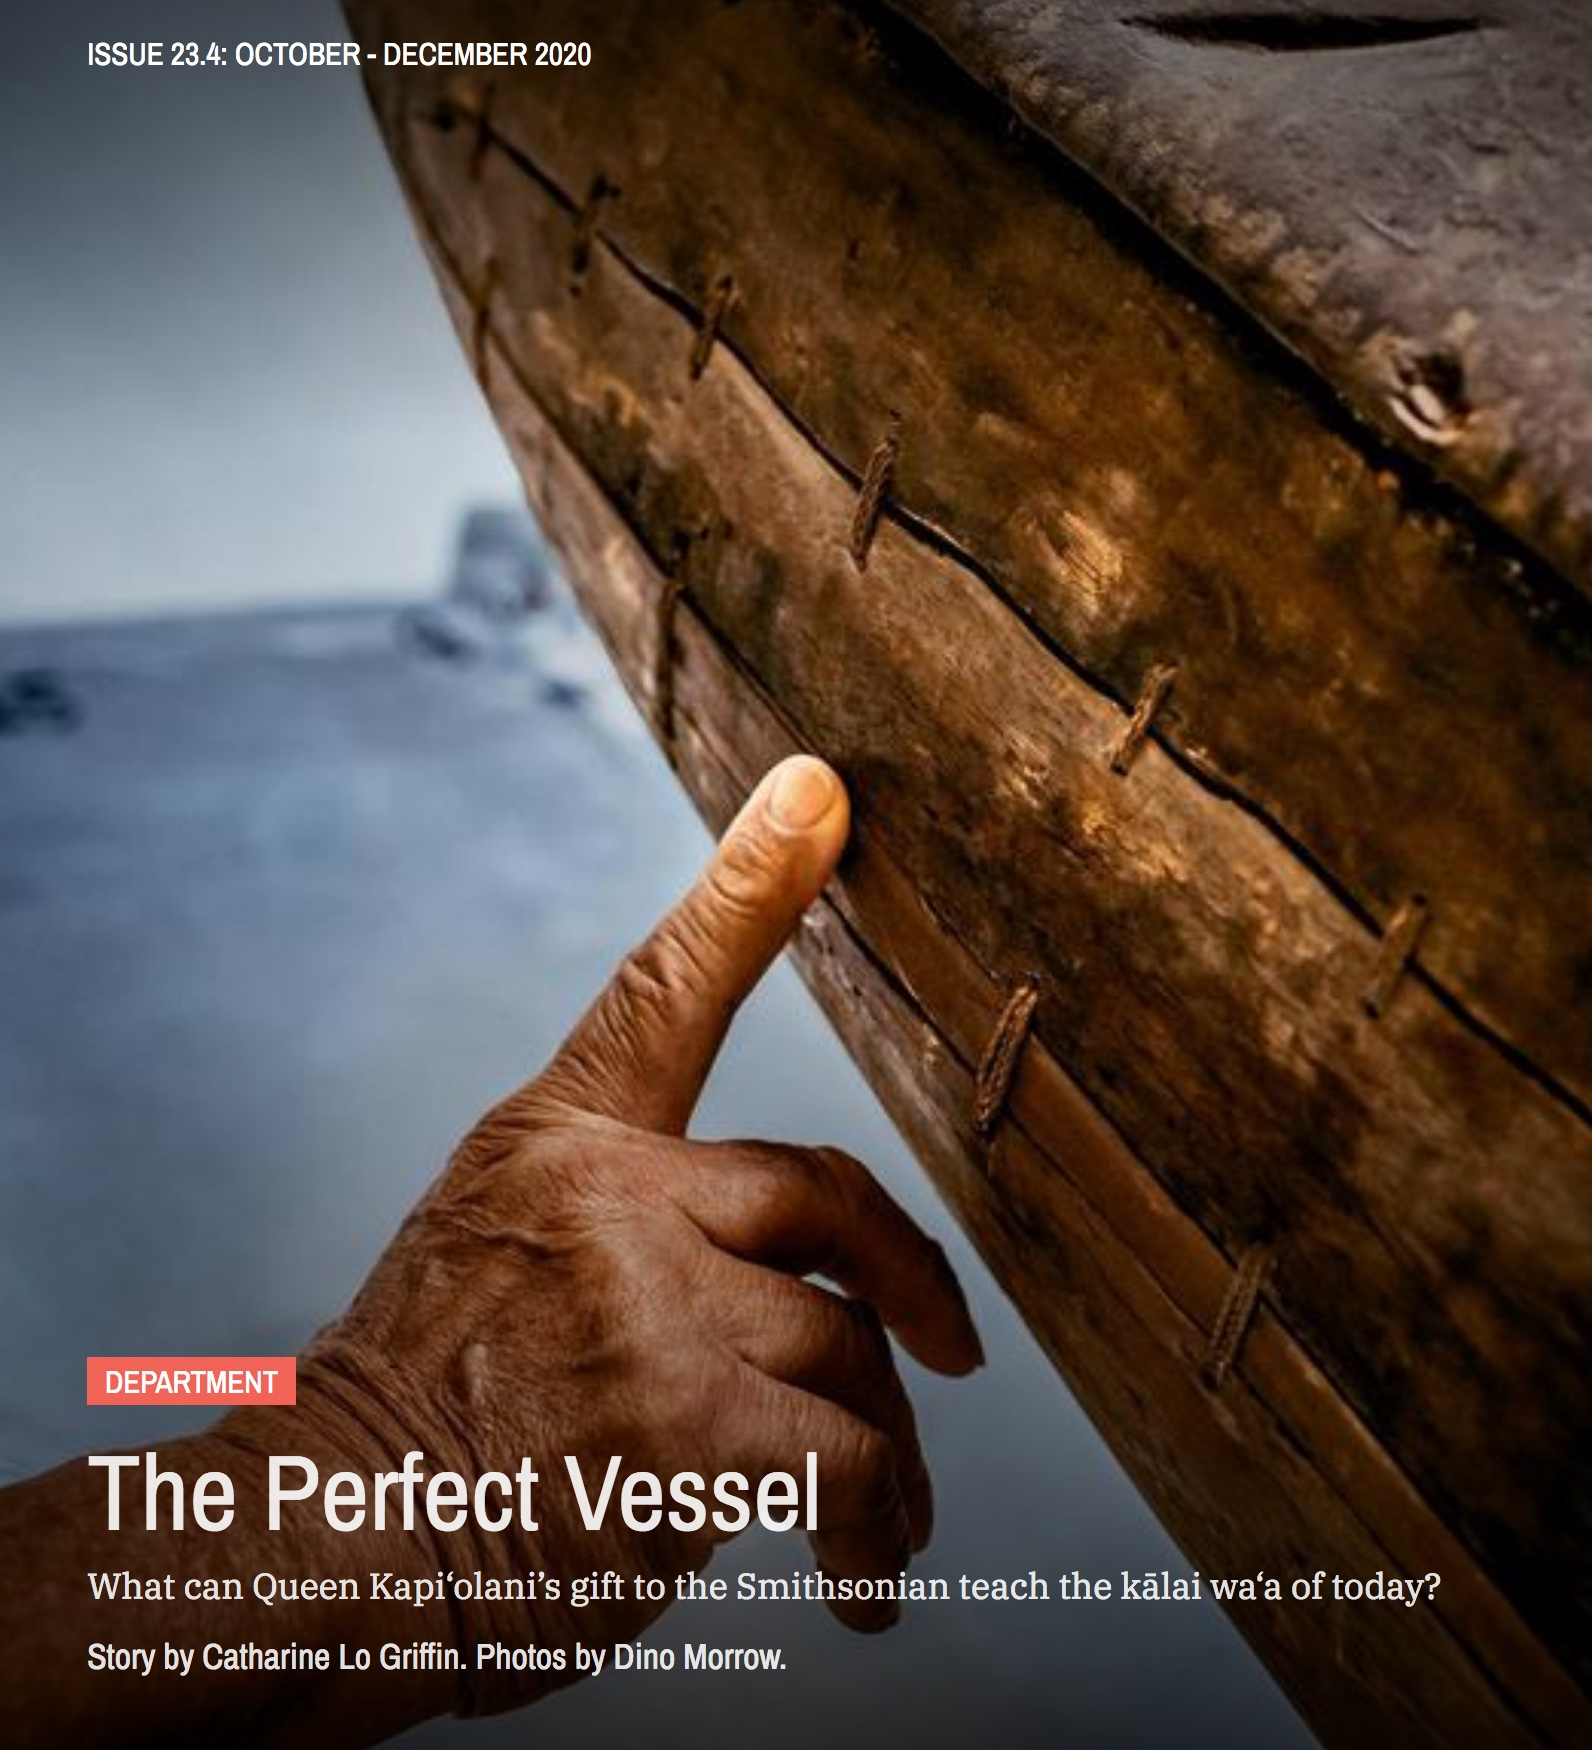 The Perfect Vessel